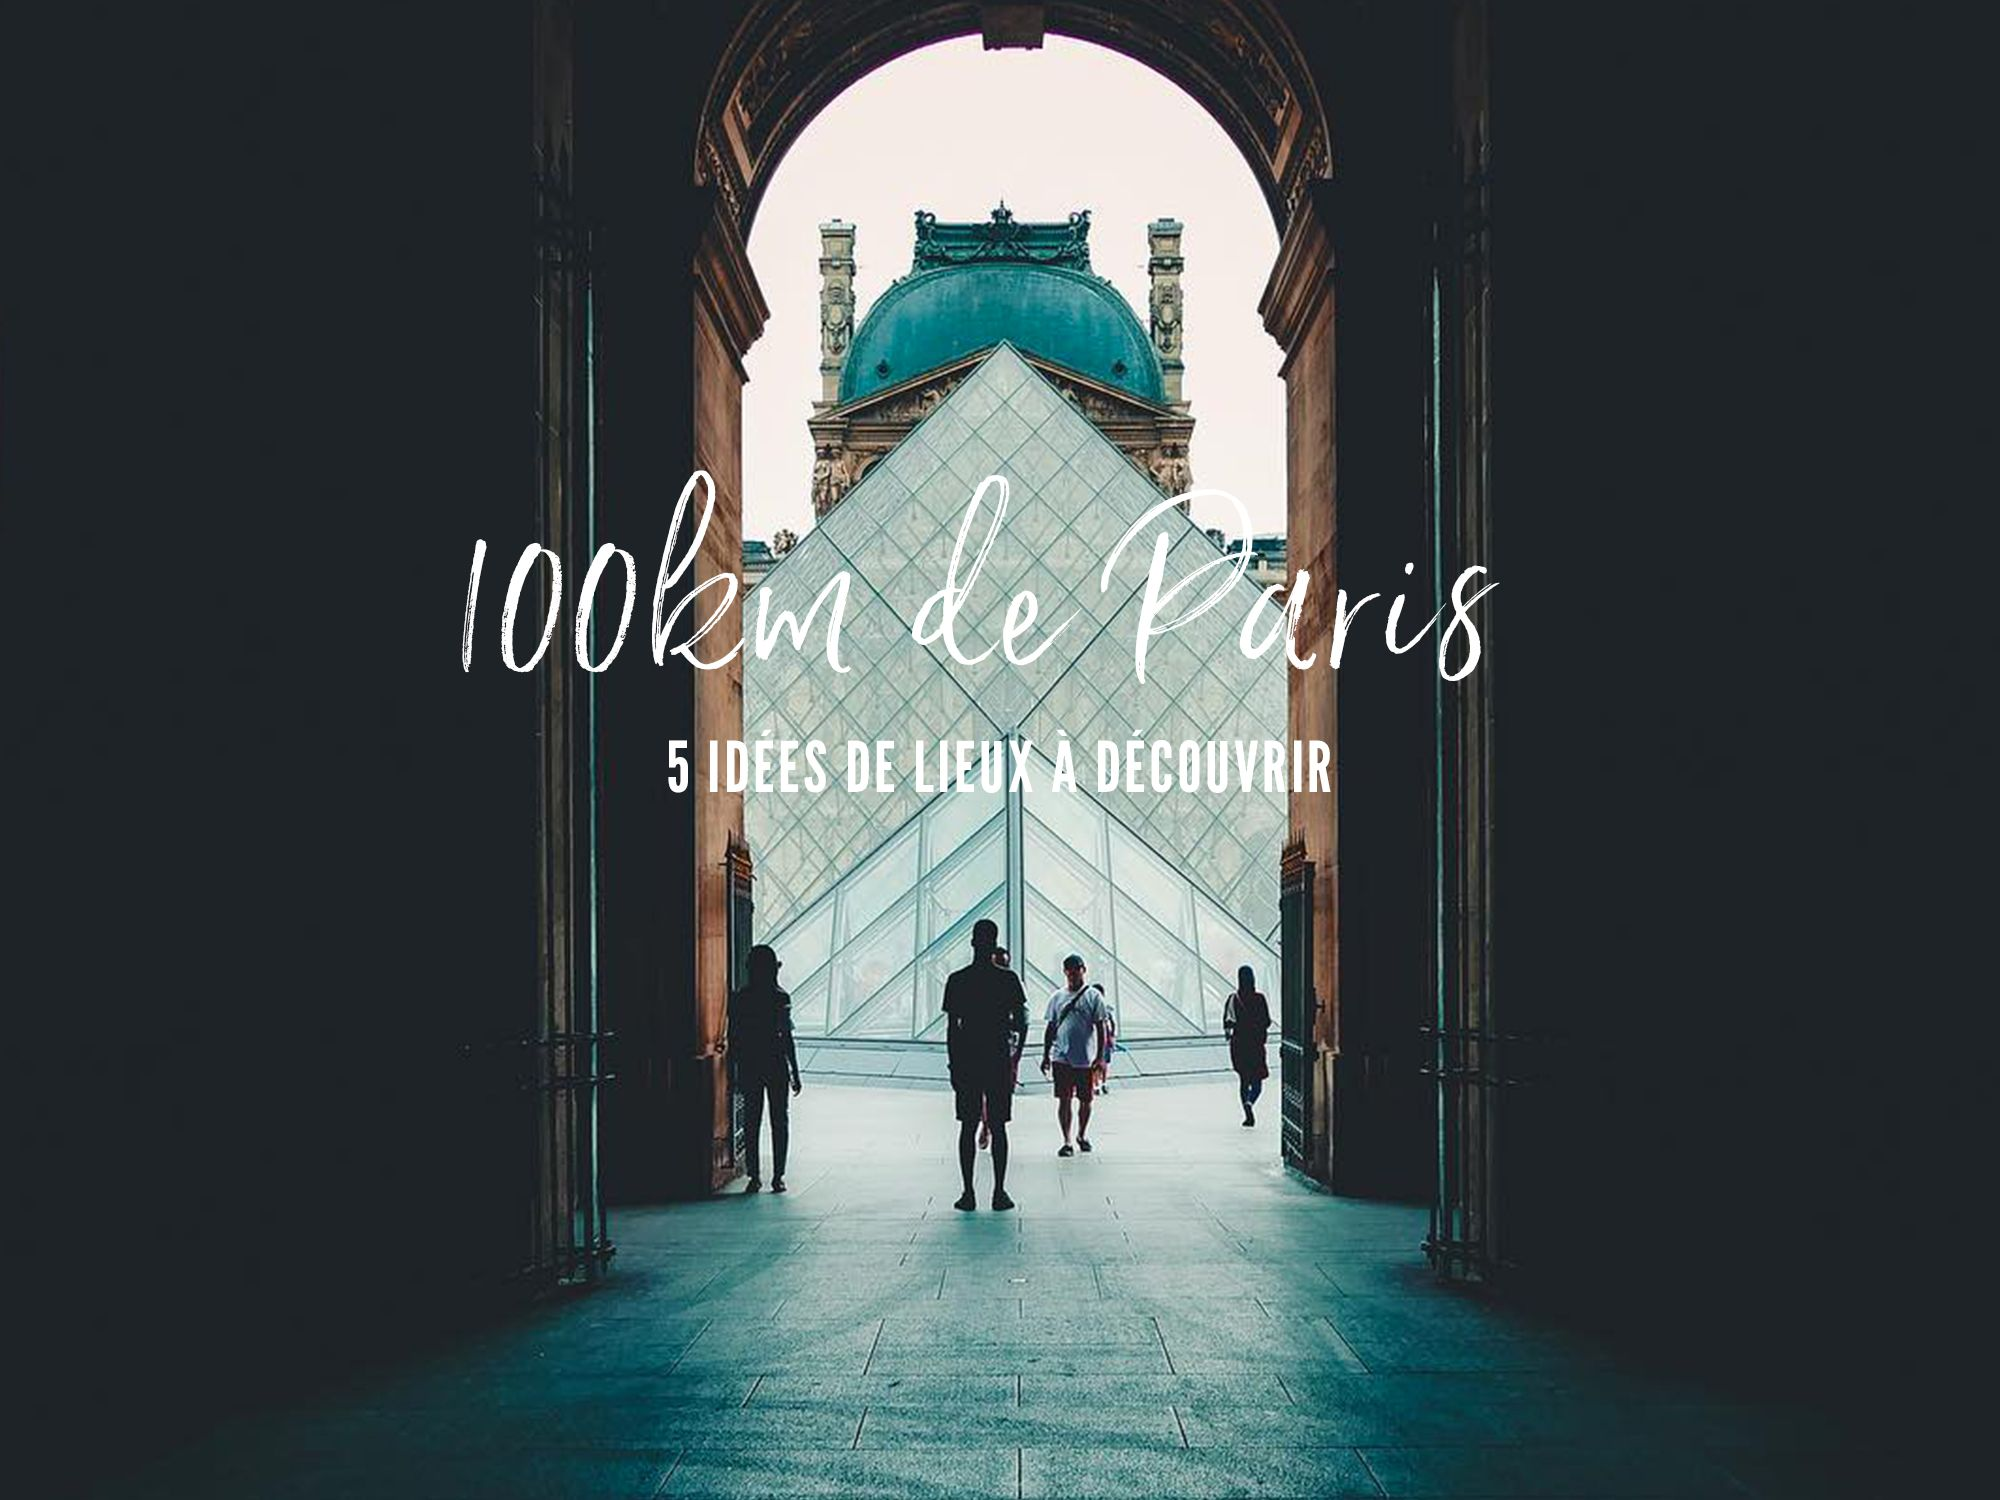 100 km de Paris